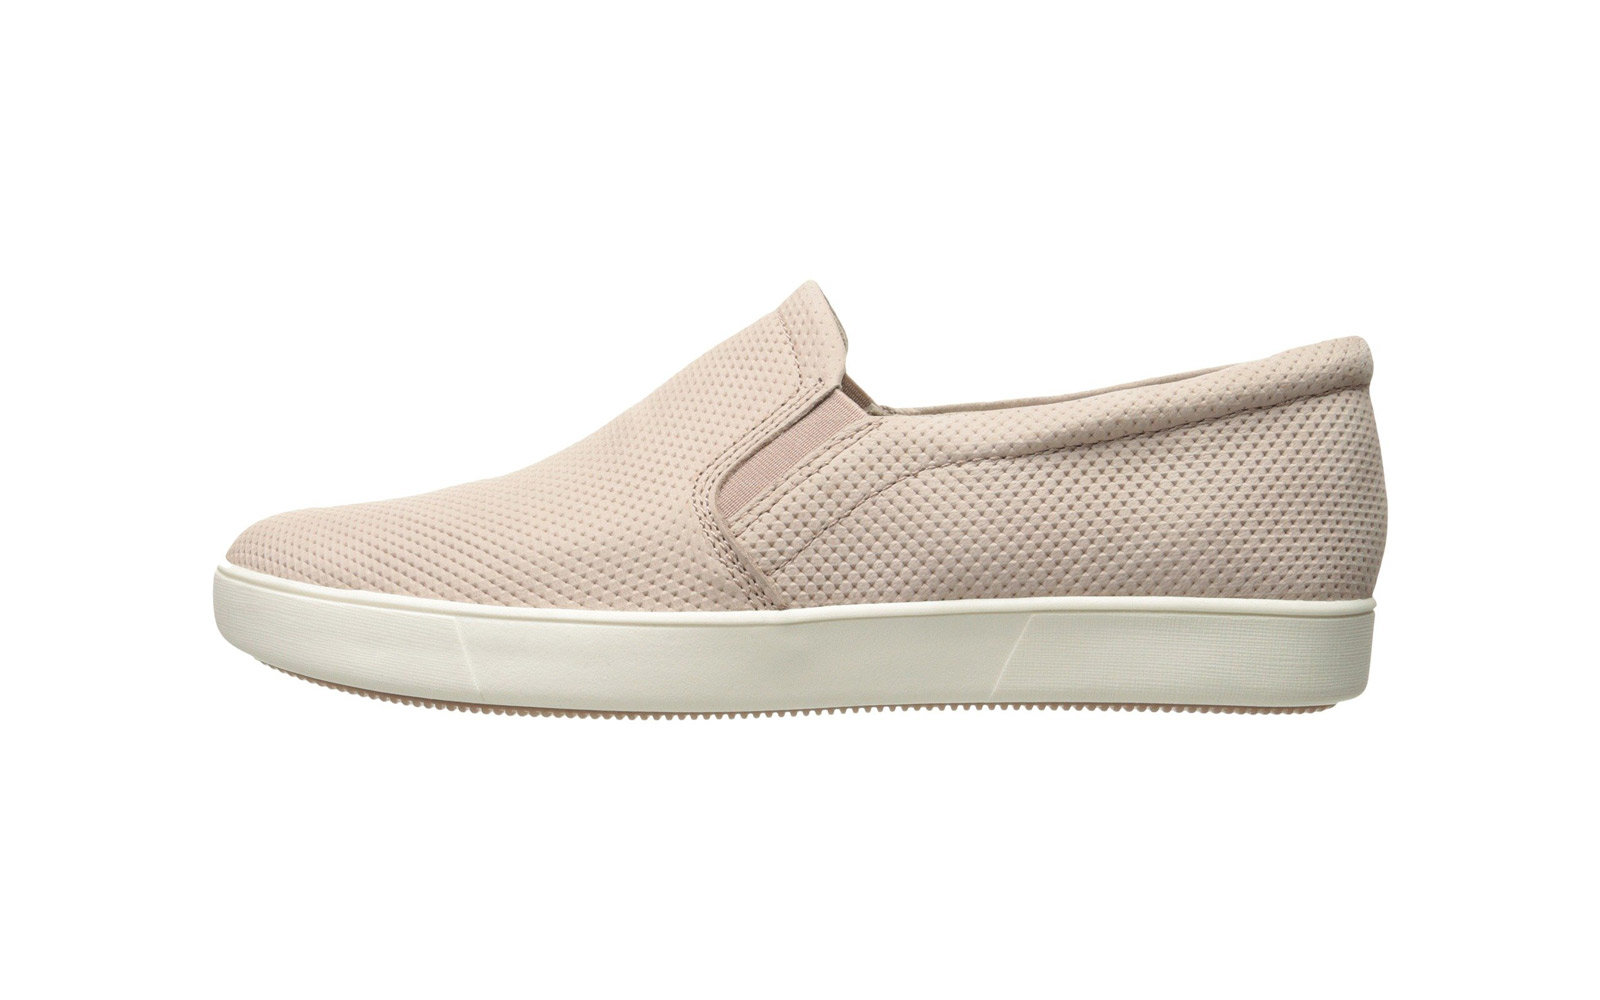 1f05ac8c620 Naturalizer  Marianne  Slip-on Sneaker. naturalizer arch support shoes for  women